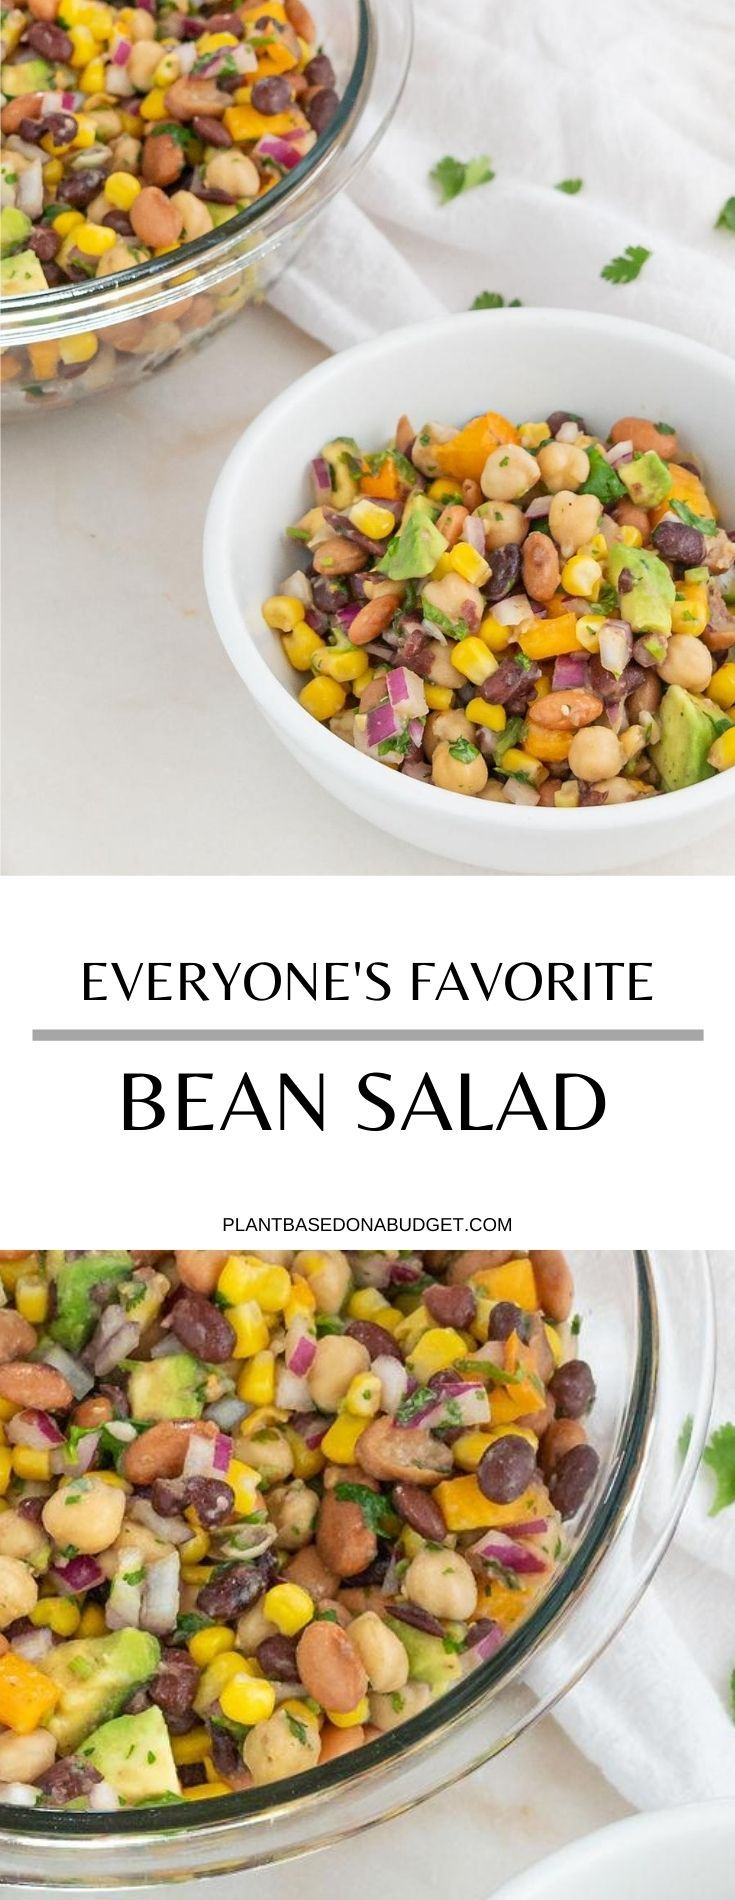 Everyone S Favorite Bean Salad Recipe In 2020 Bean Salad Recipes Vegan Recipes Easy